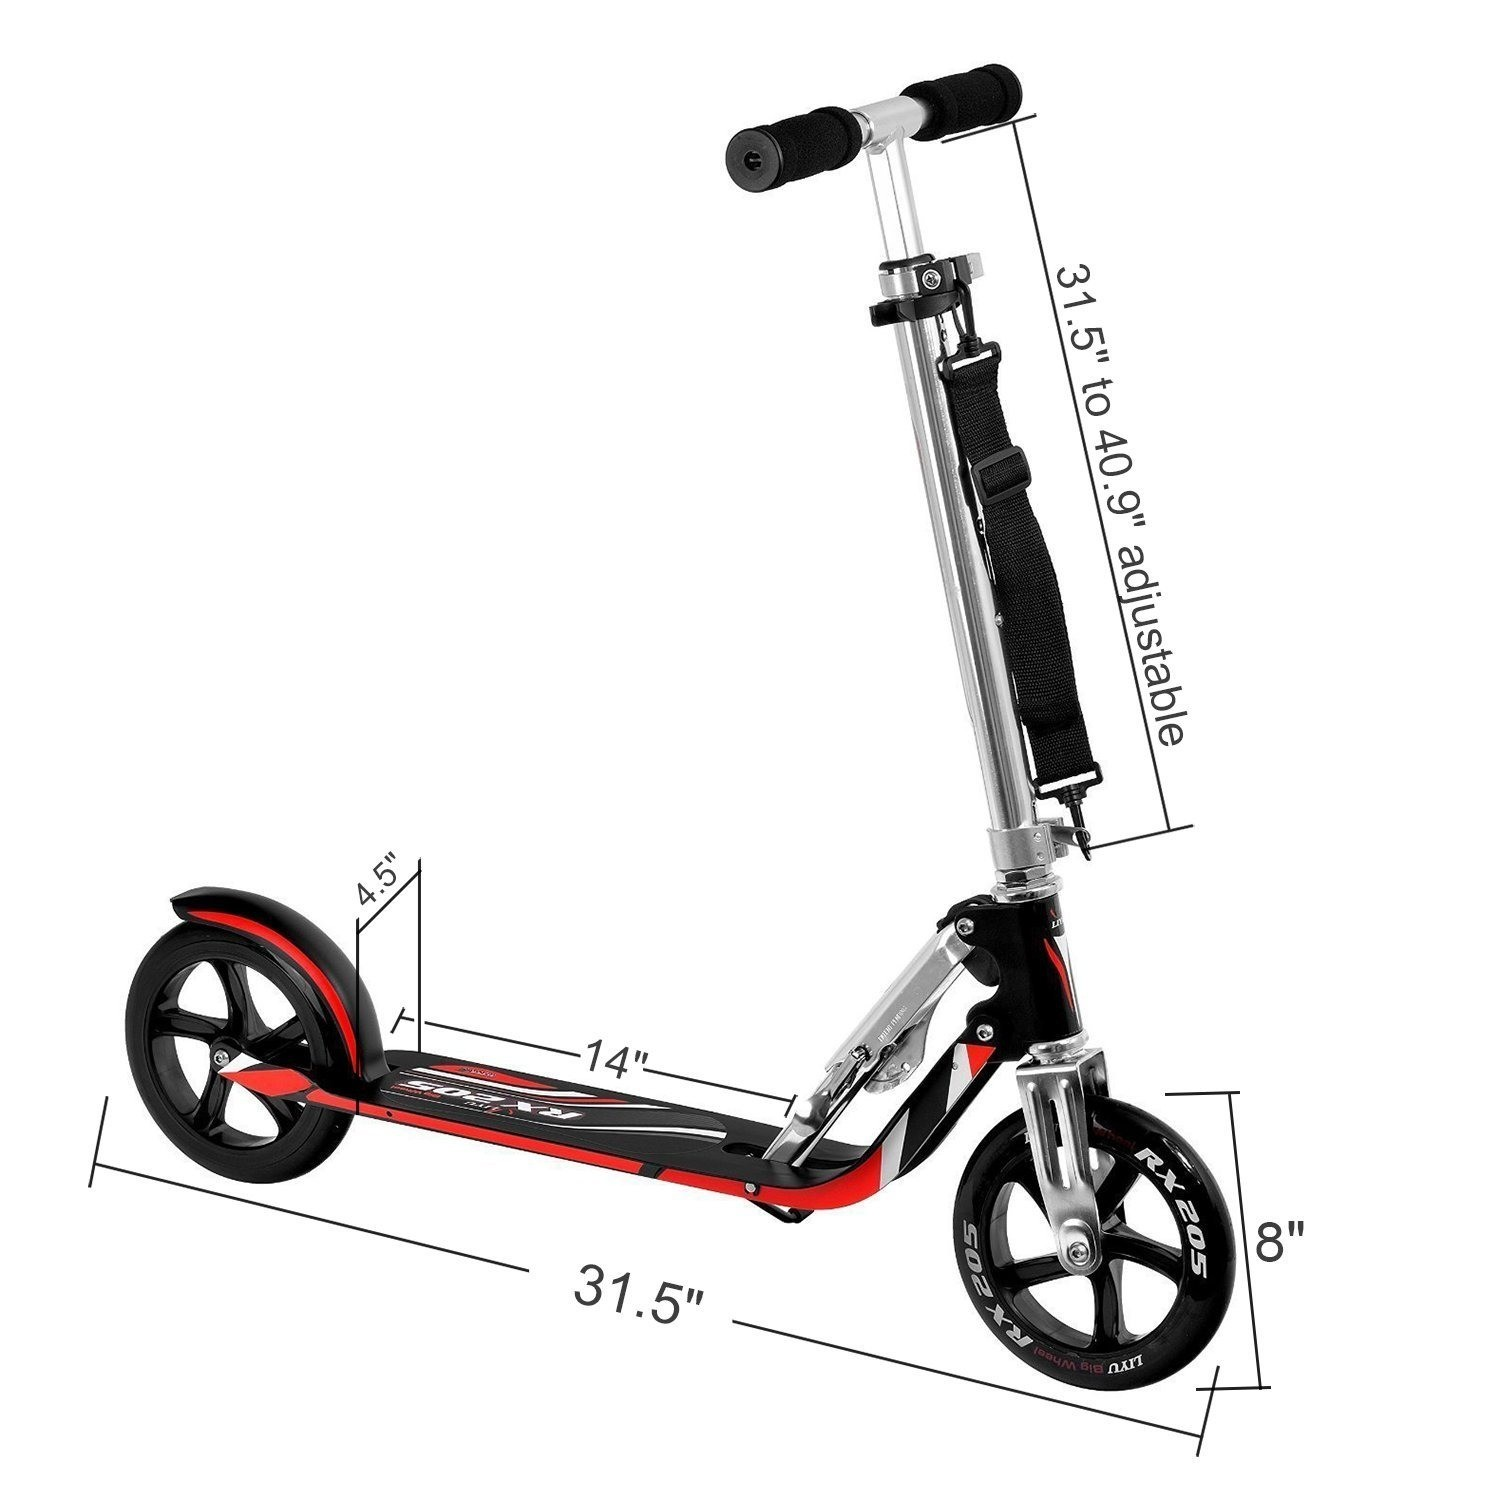 VOKUL VK205 Premium Adult Scooter Specifications